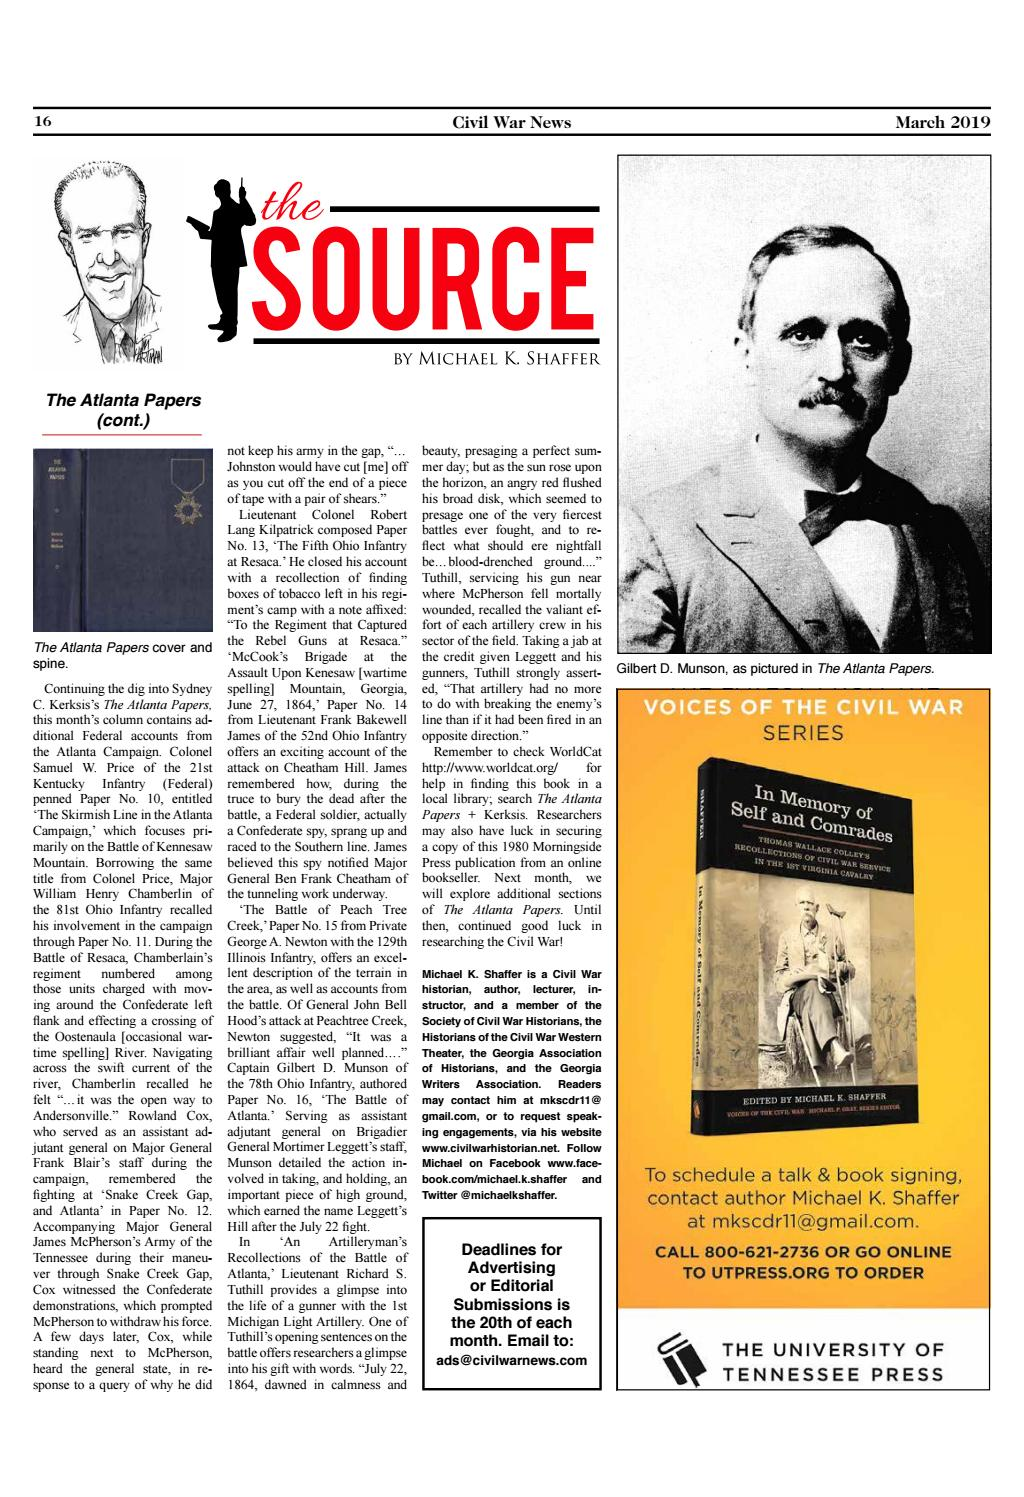 'The Source' March 2019